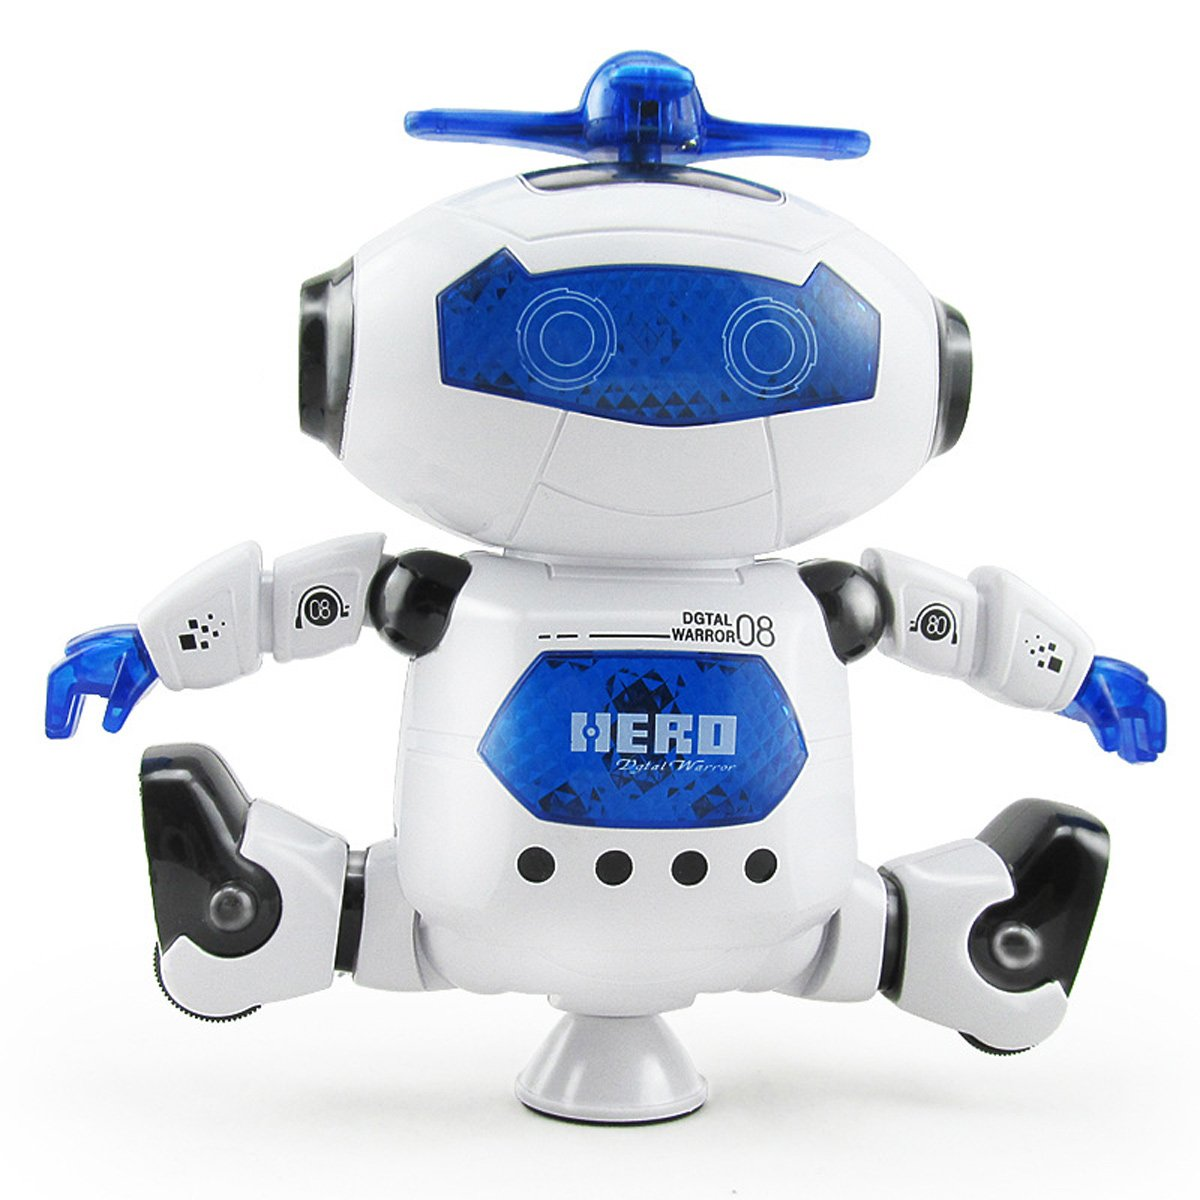 Electronic 360 Degree Rotation Walking Dancing Robot Toys With Music And Colorful Flashing Lights for Kids Boys Girls Birthday Xmas Gift AbleGirl